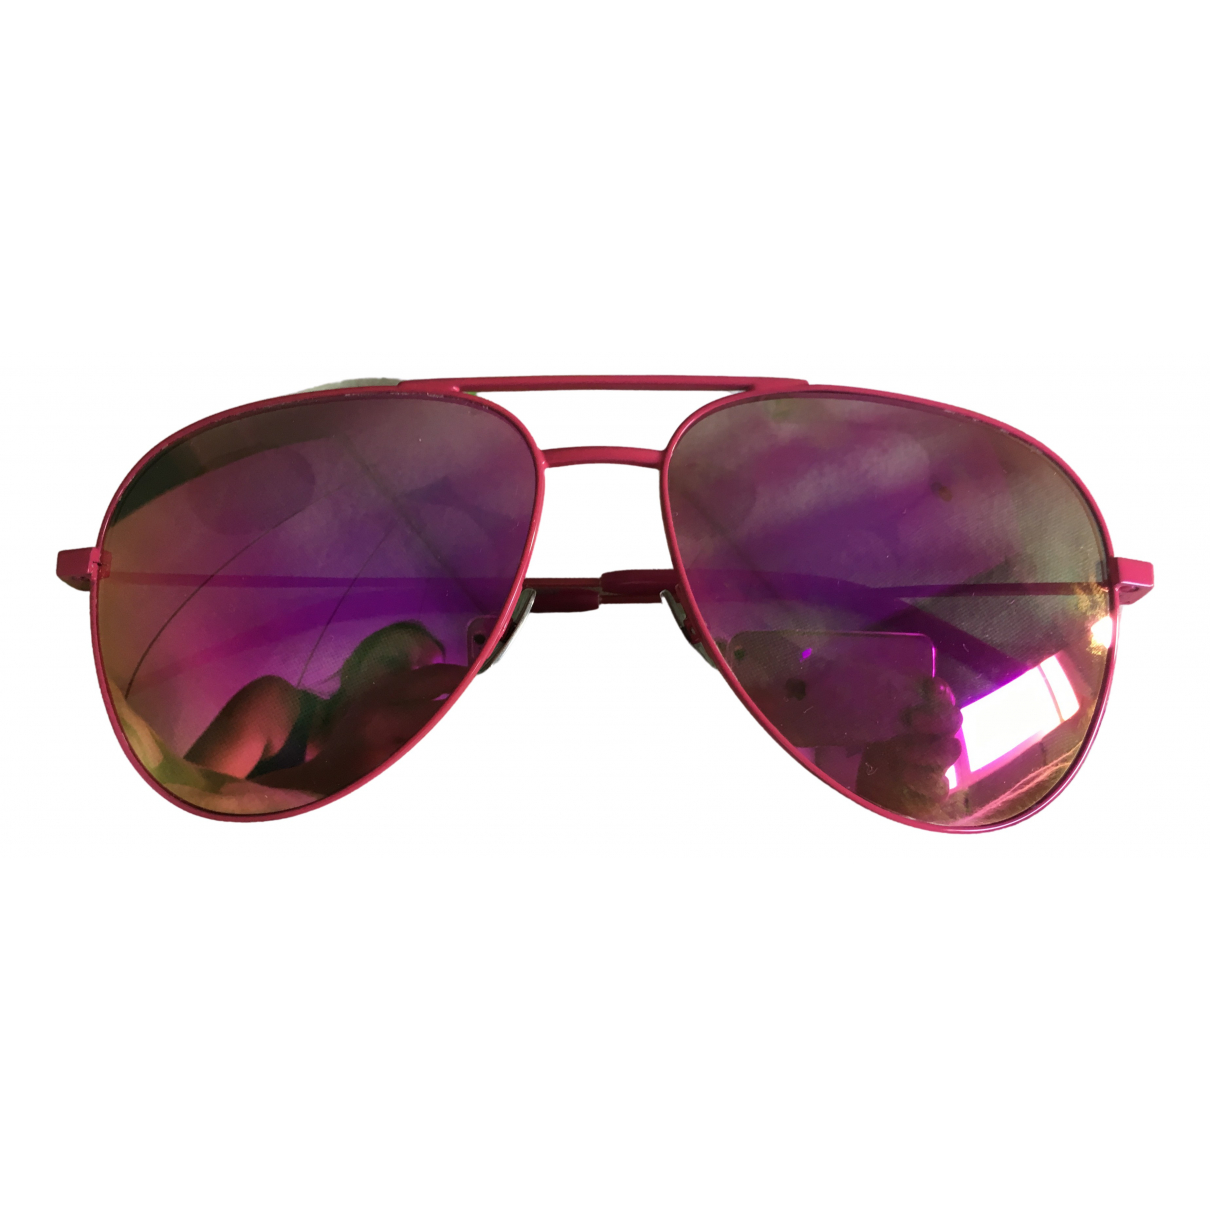 Saint Laurent N Pink Metal Sunglasses for Women N